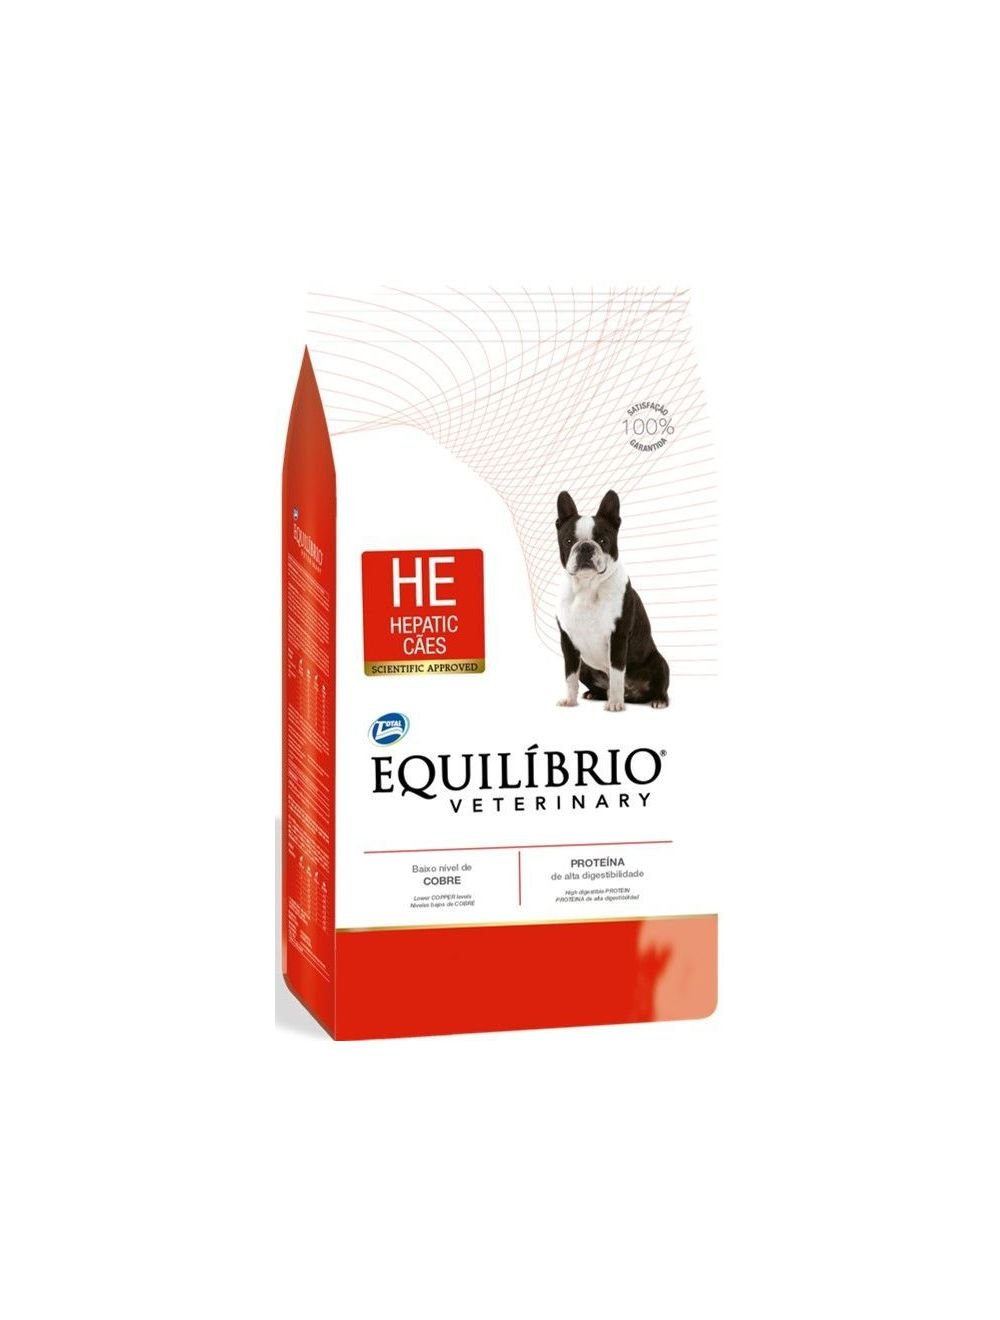 Equilibrio Perro Veterinary Hepatic